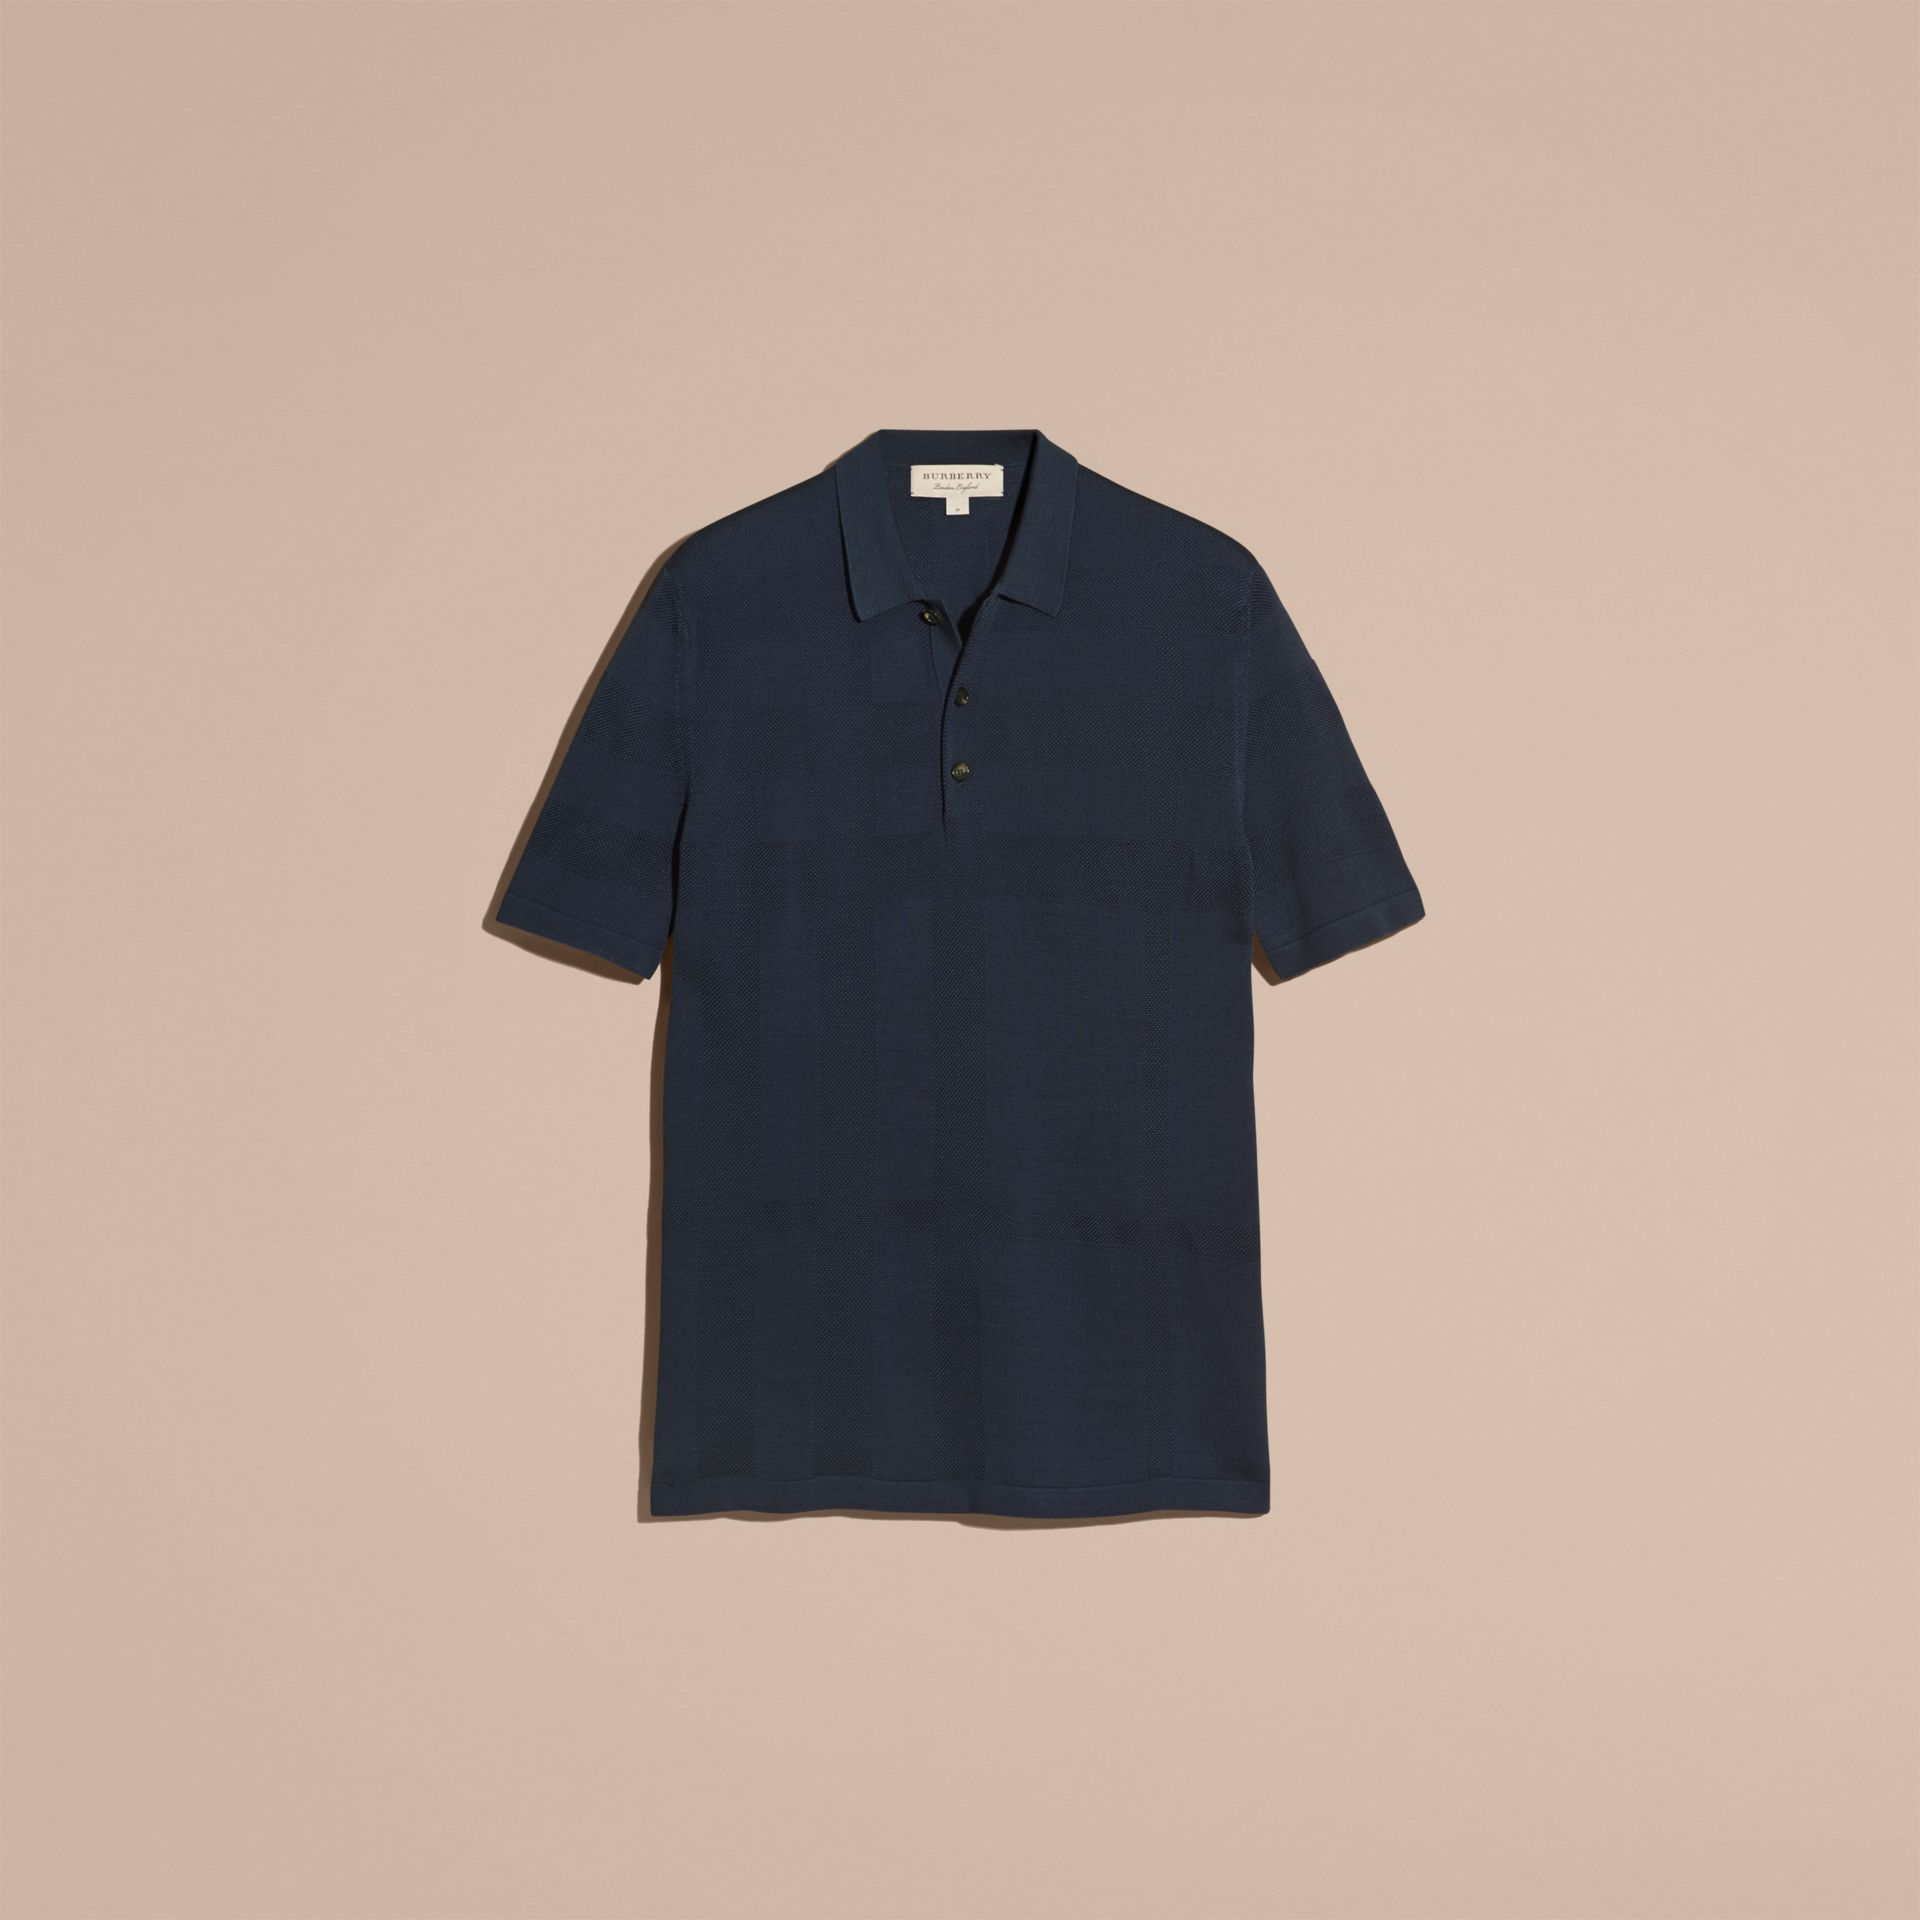 Check Jacquard Piqué Silk Cotton Polo Shirt in Navy - Men | Burberry - gallery image 3